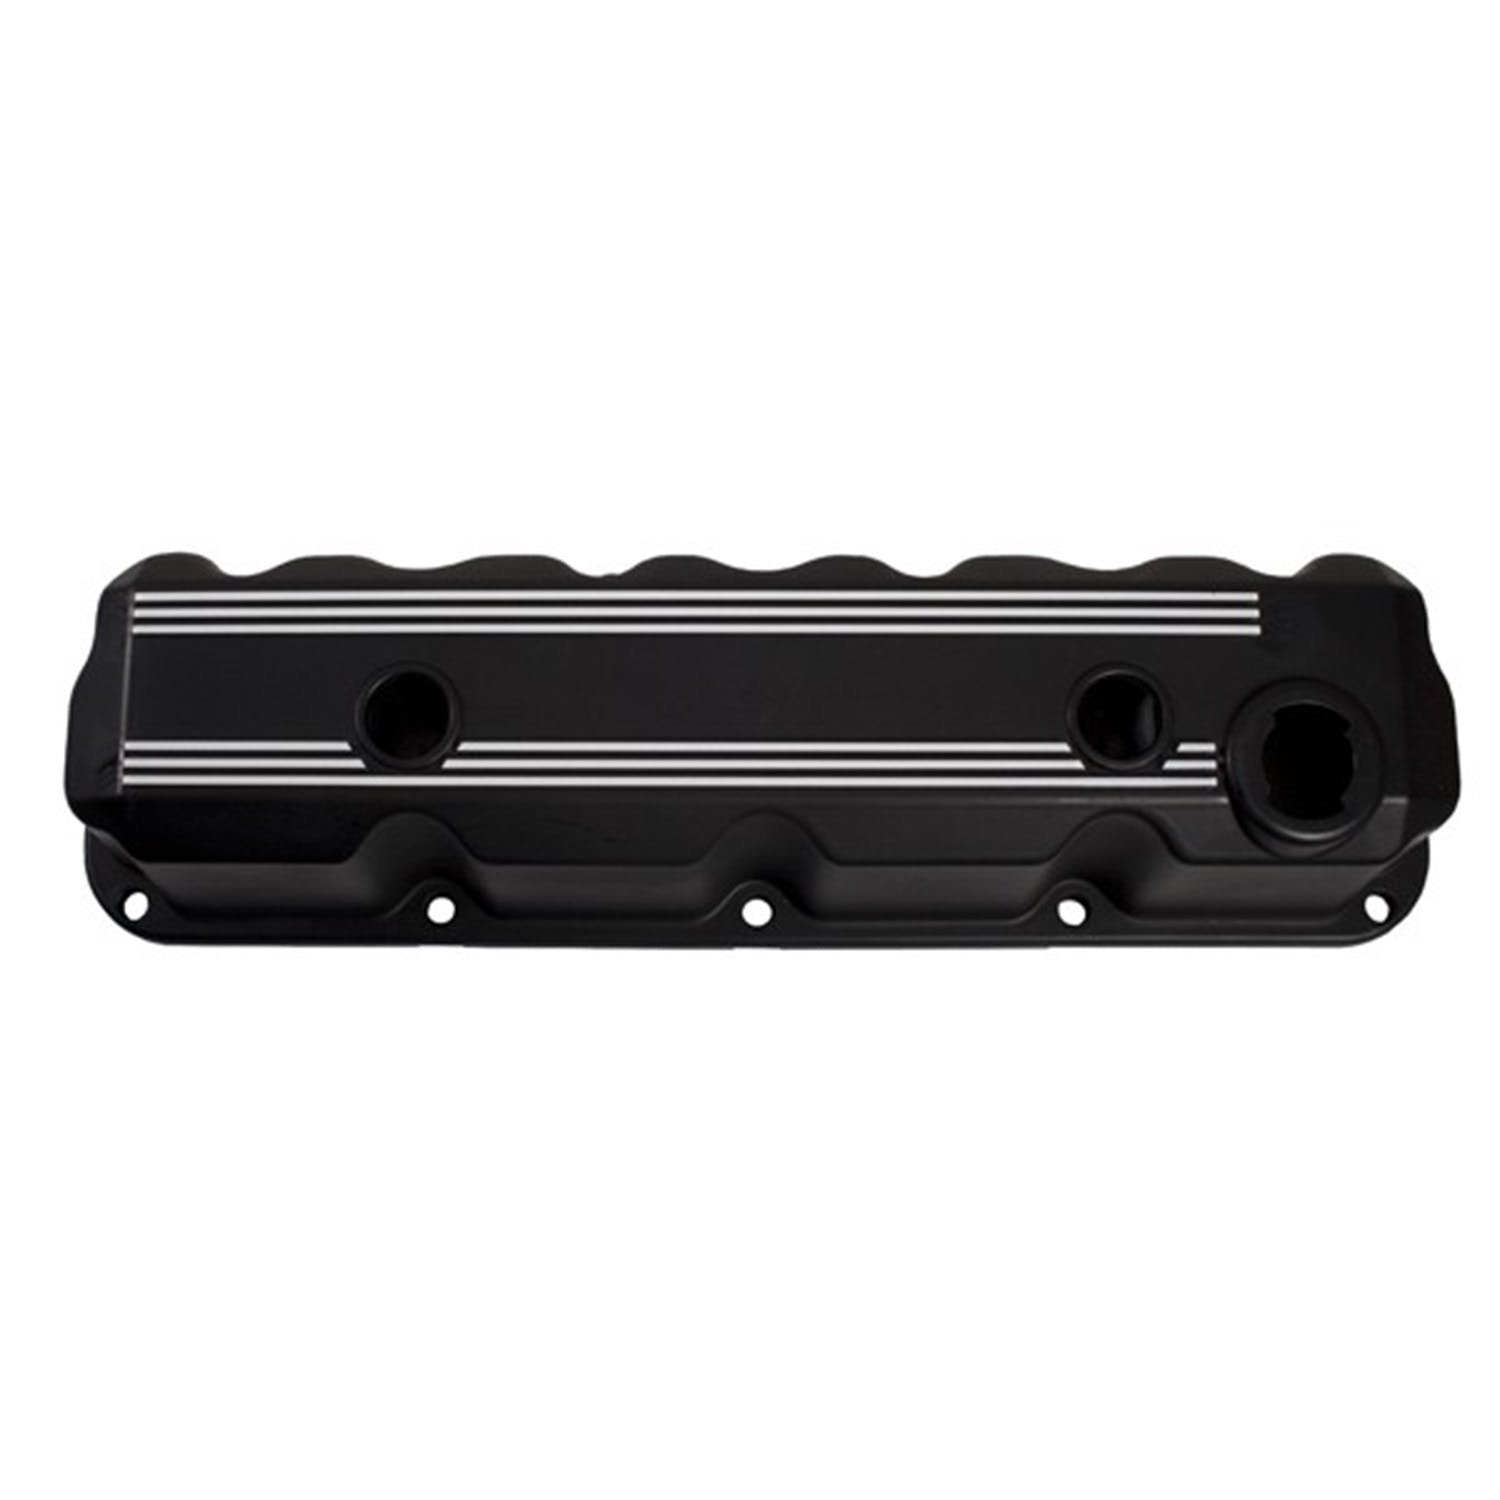 Omix-Ada DMC-6914 Valve Cover Set